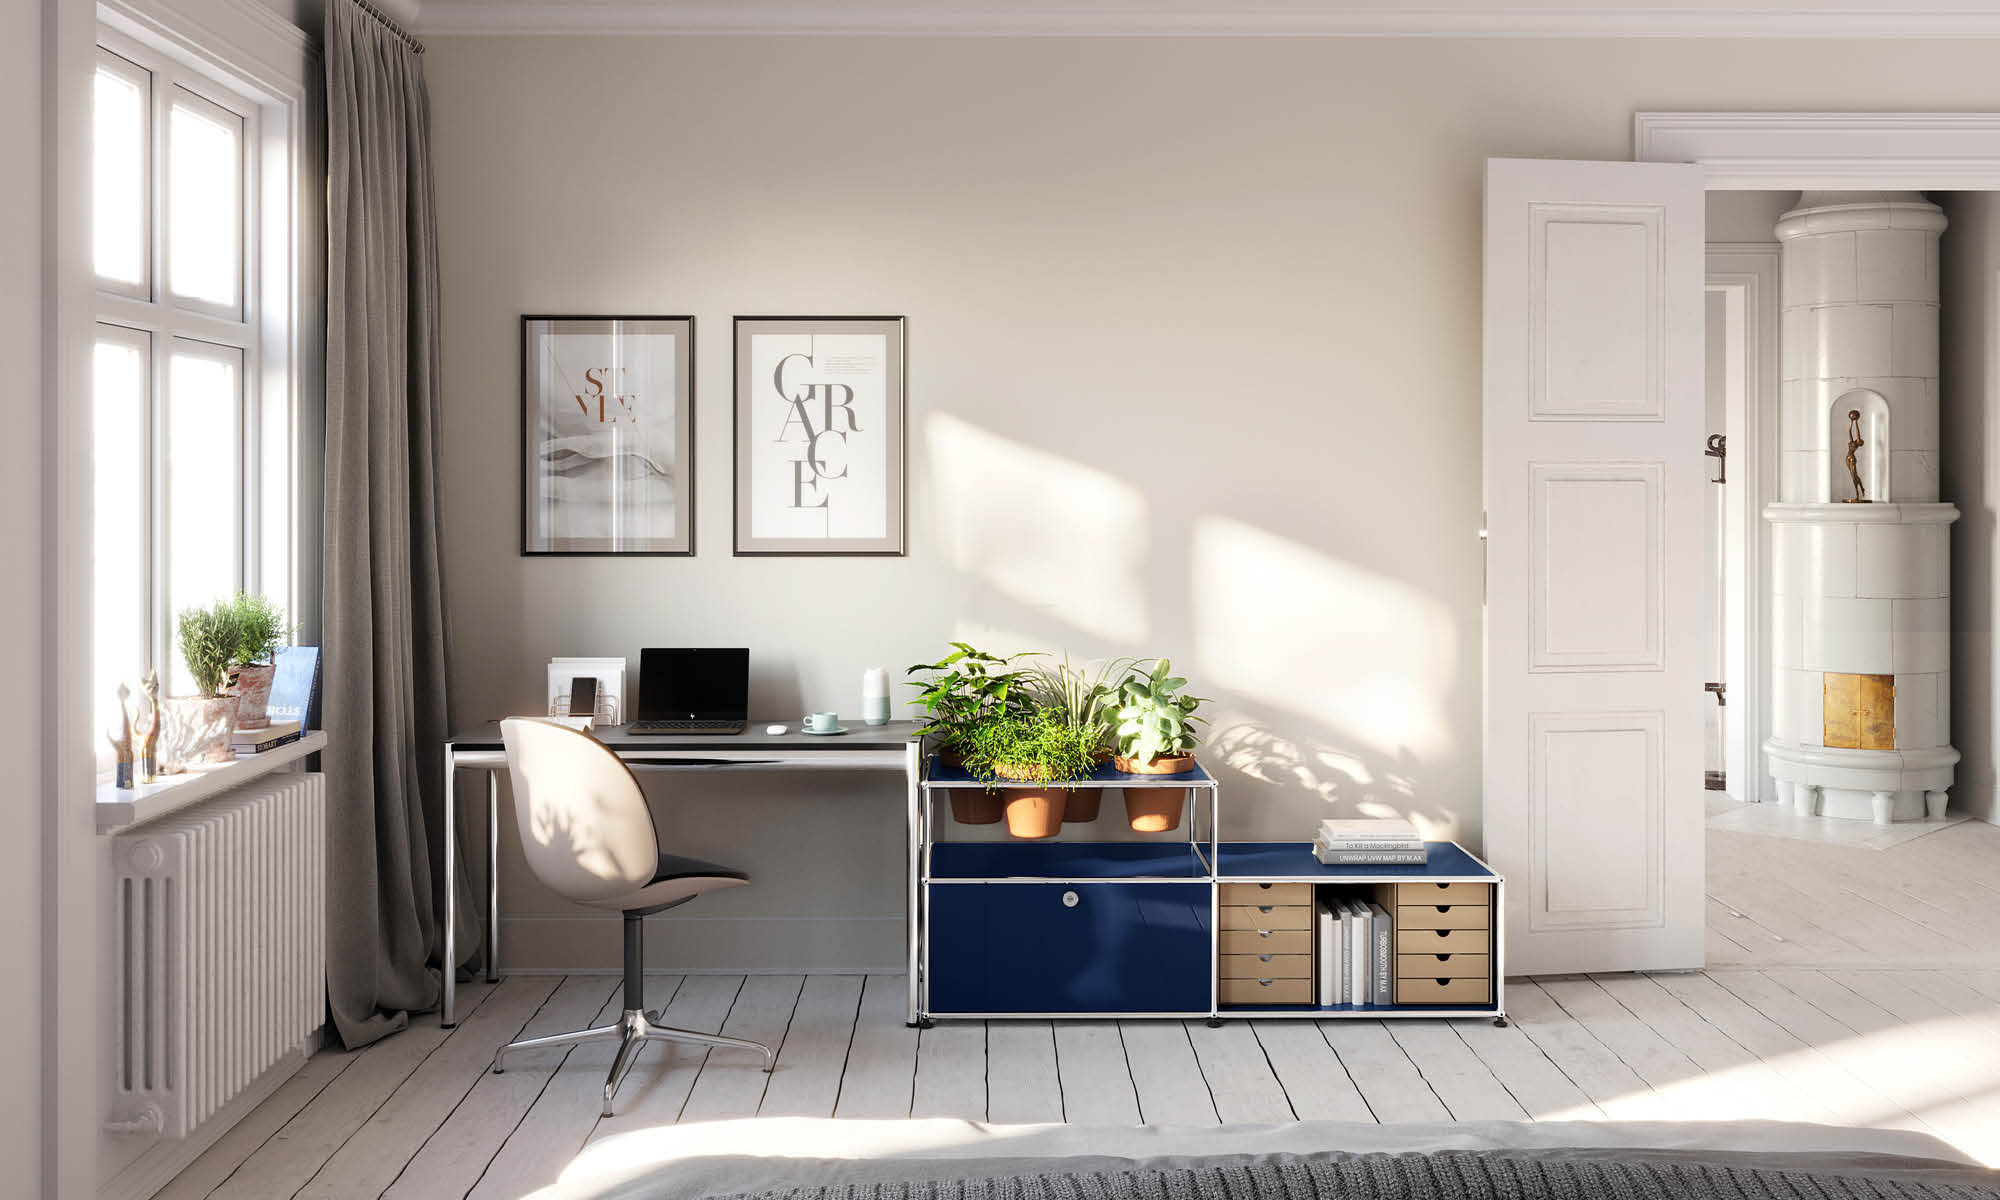 Home office desk with plants